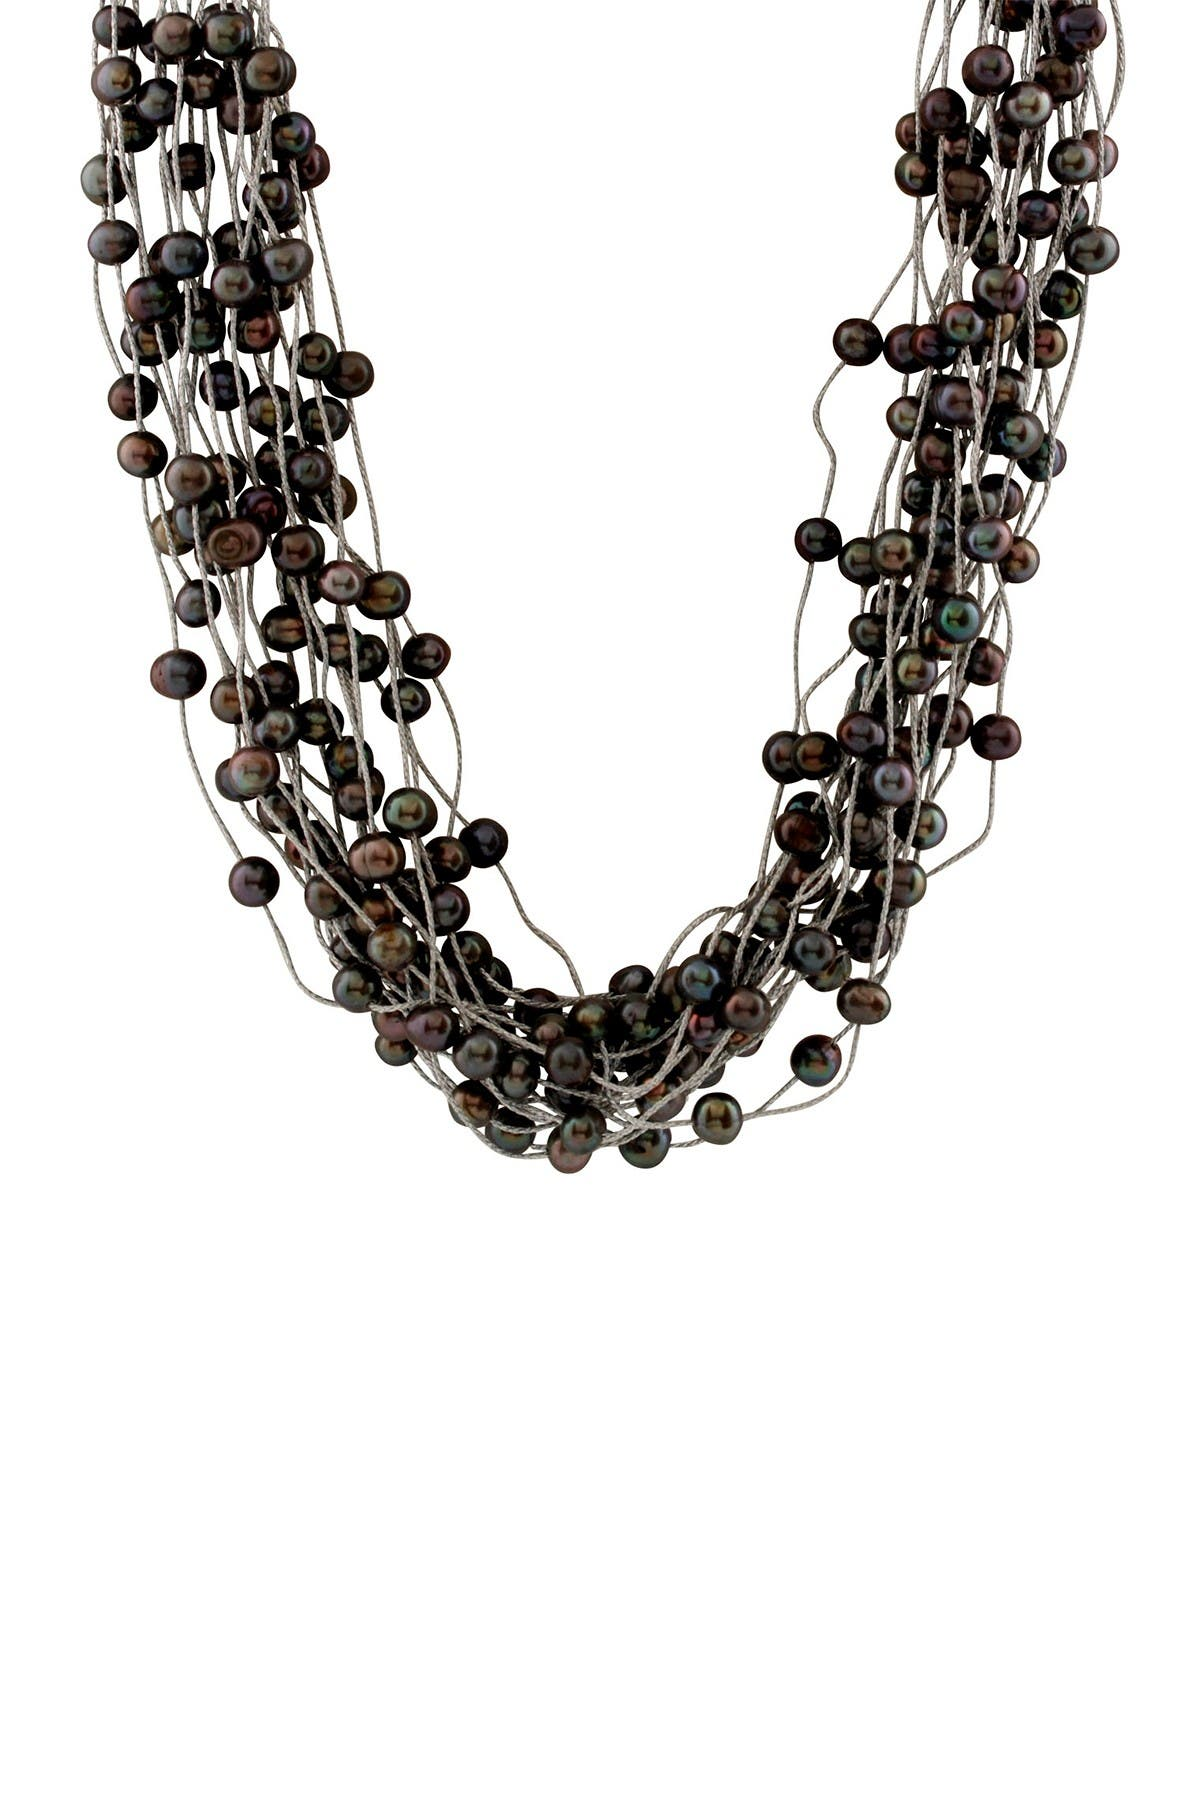 Image of Splendid Pearls 6-8mm Dyed Black Freshwater Pearl 18-Row Necklace